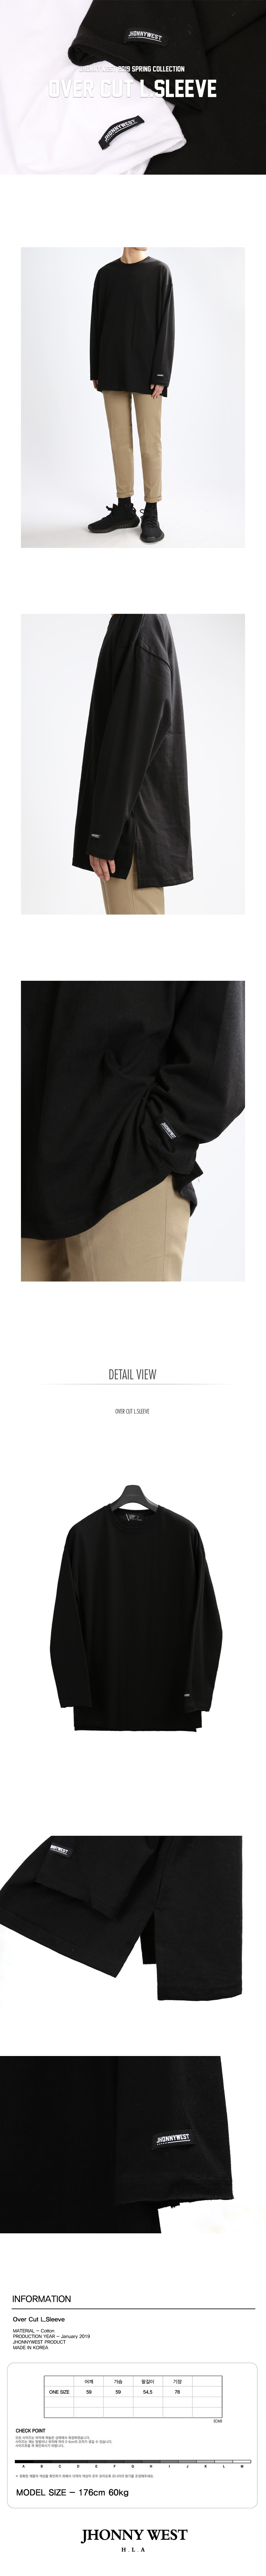 JHONNY WEST - Over Cut L.Sleeve (Black)